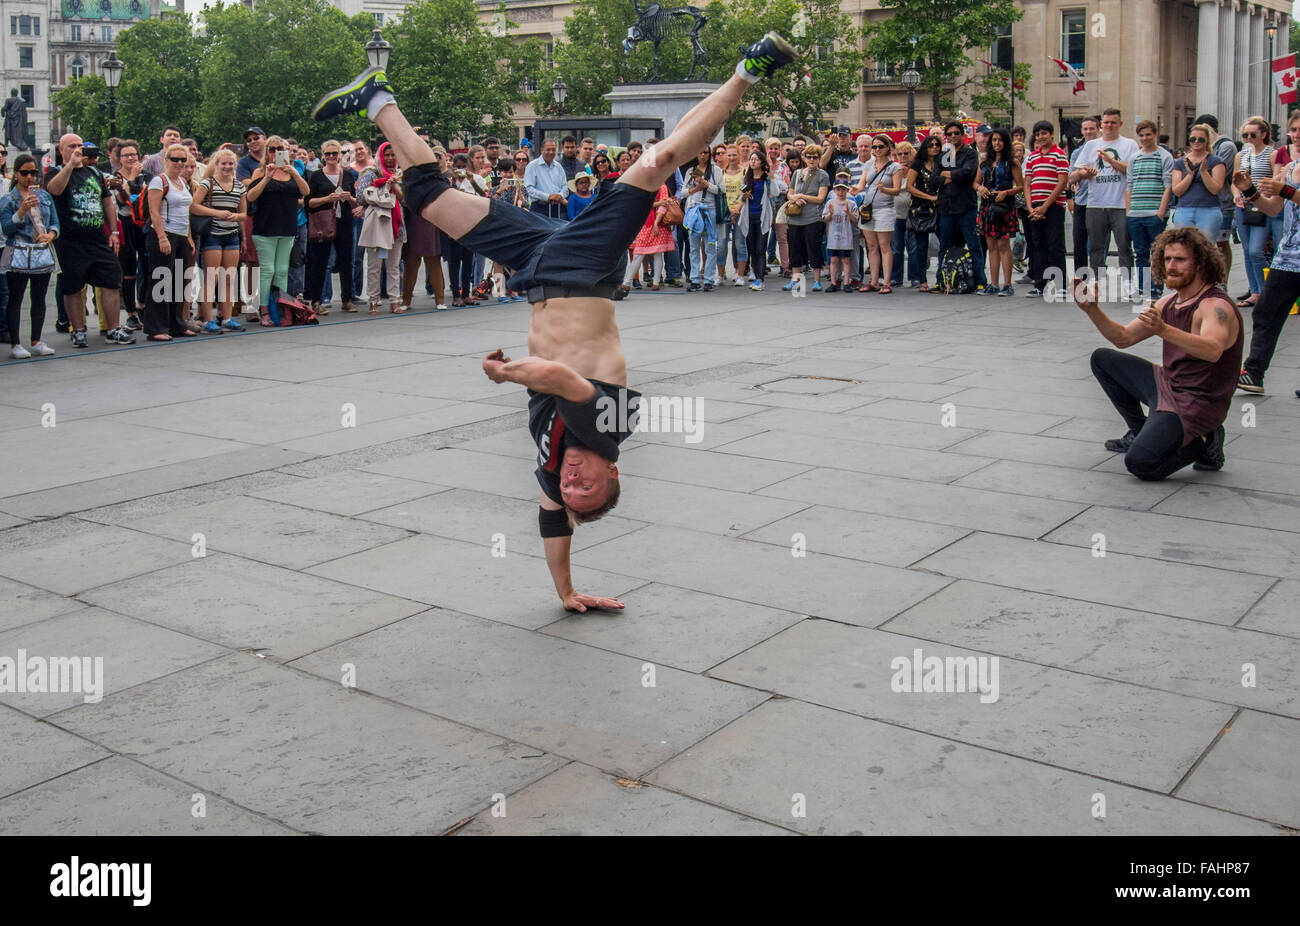 Street entertainers performing gymnastic feats for tourist and visitors inTrafalgar Square London England - Stock Image